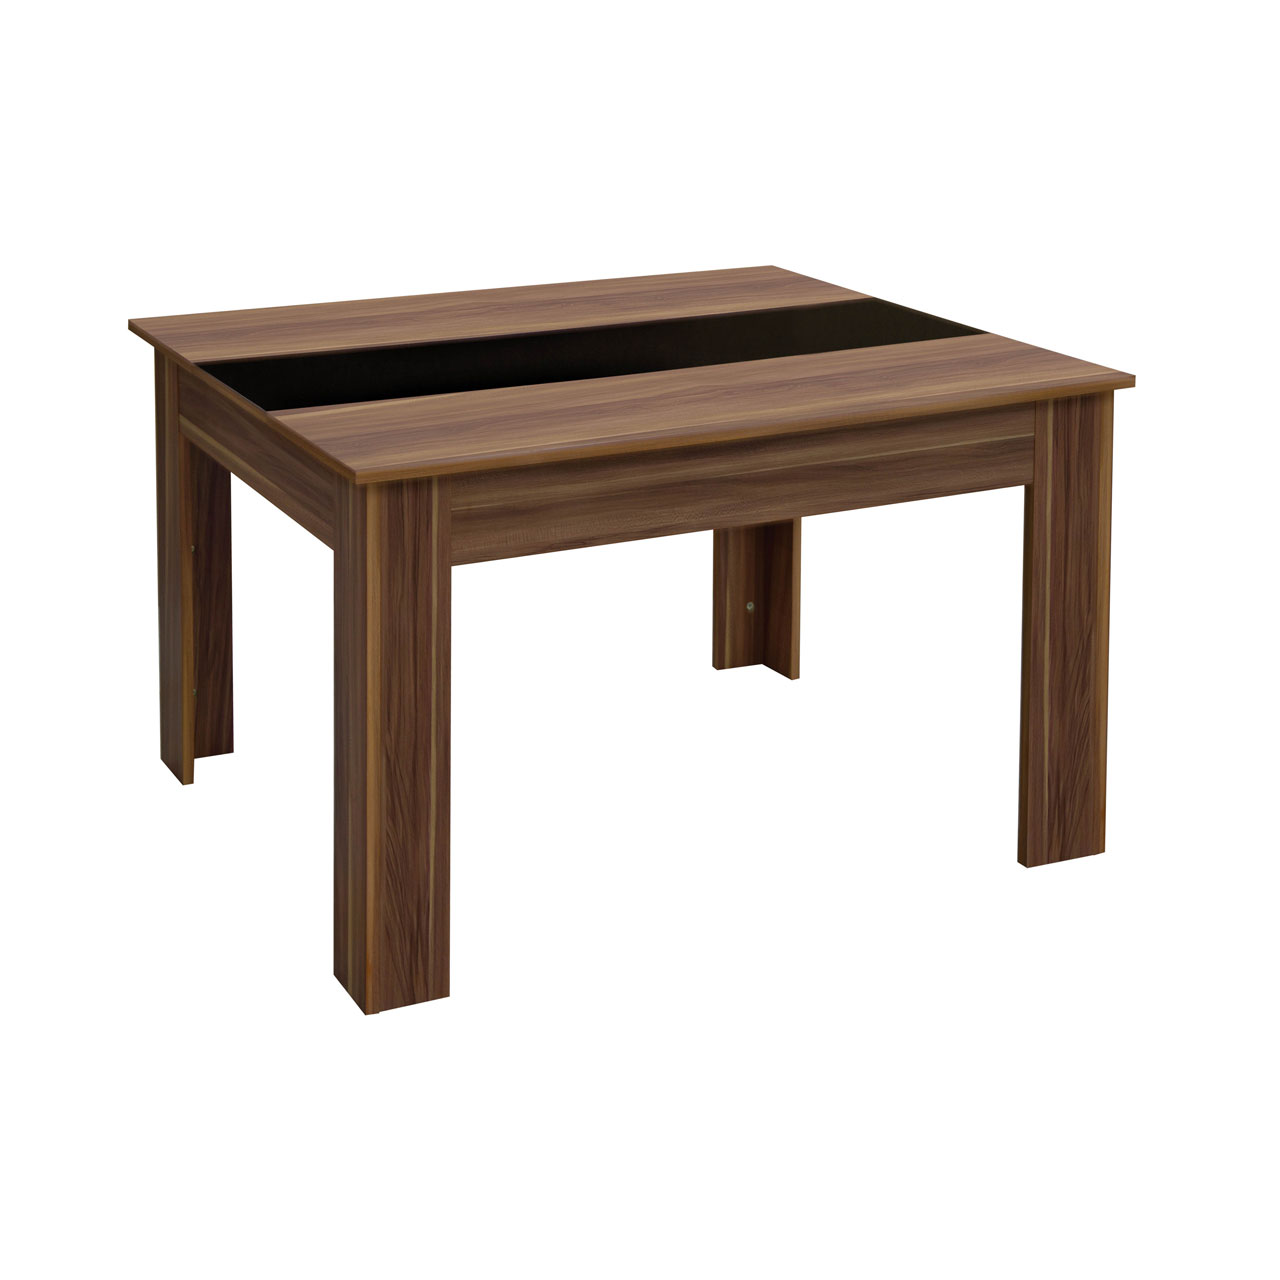 Fargo four person Dining Table, Walnut Veneer, Black High Gloss Detail